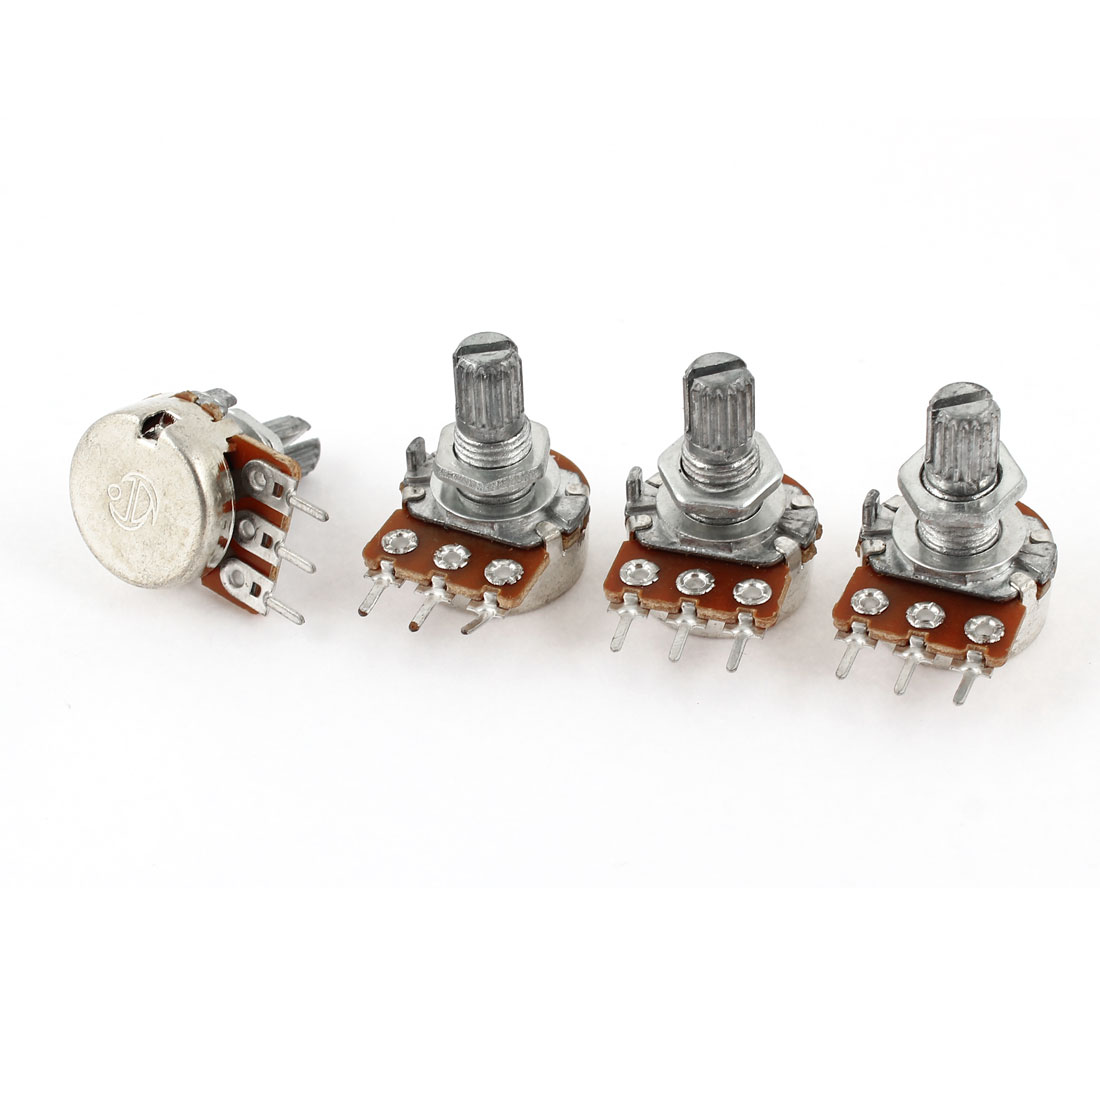 4 Pcs Single Linear Knurled Shaft Control Volume Potentiometers 500K Ohm WH148